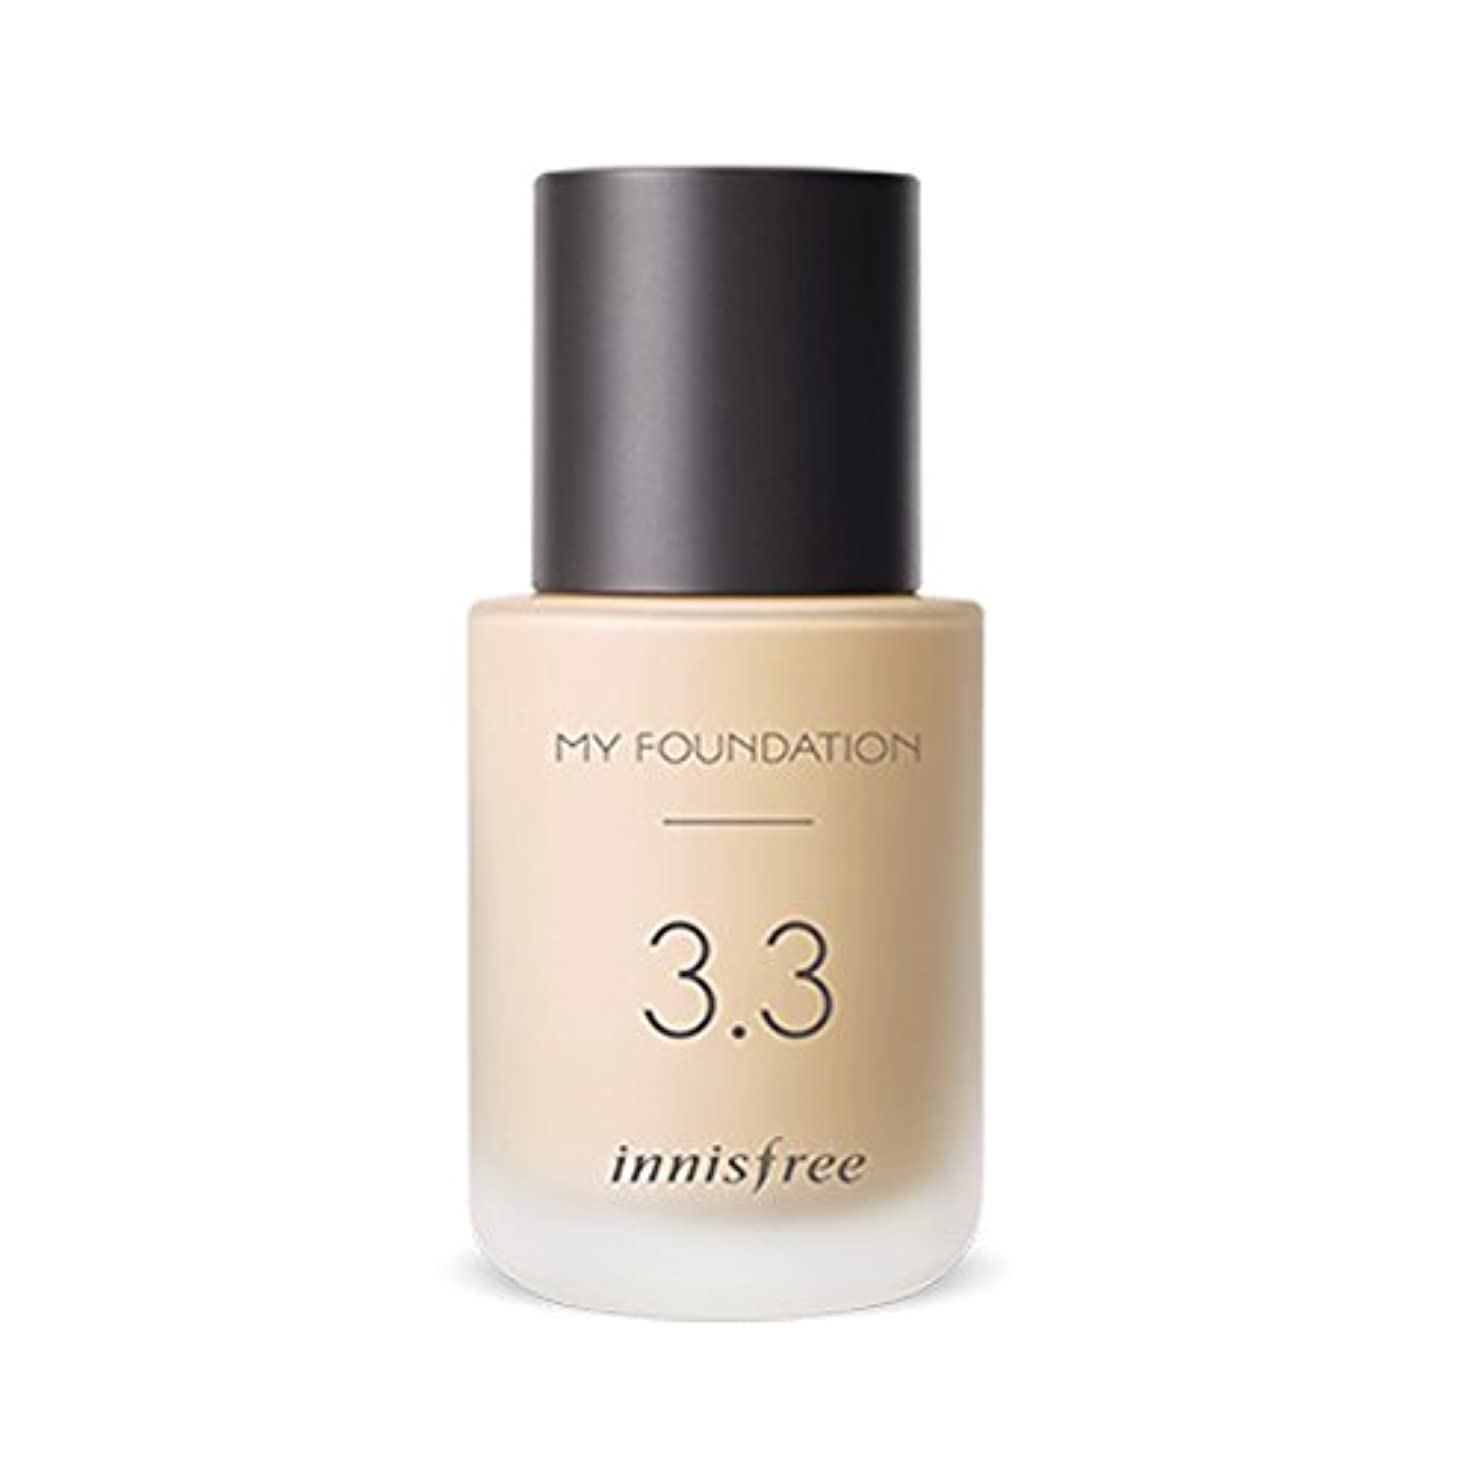 主張する習熟度あるイニスフリーMy Foundation Glow 30ml「2018新製品」 Innisfree My Foundation Glow 30ml